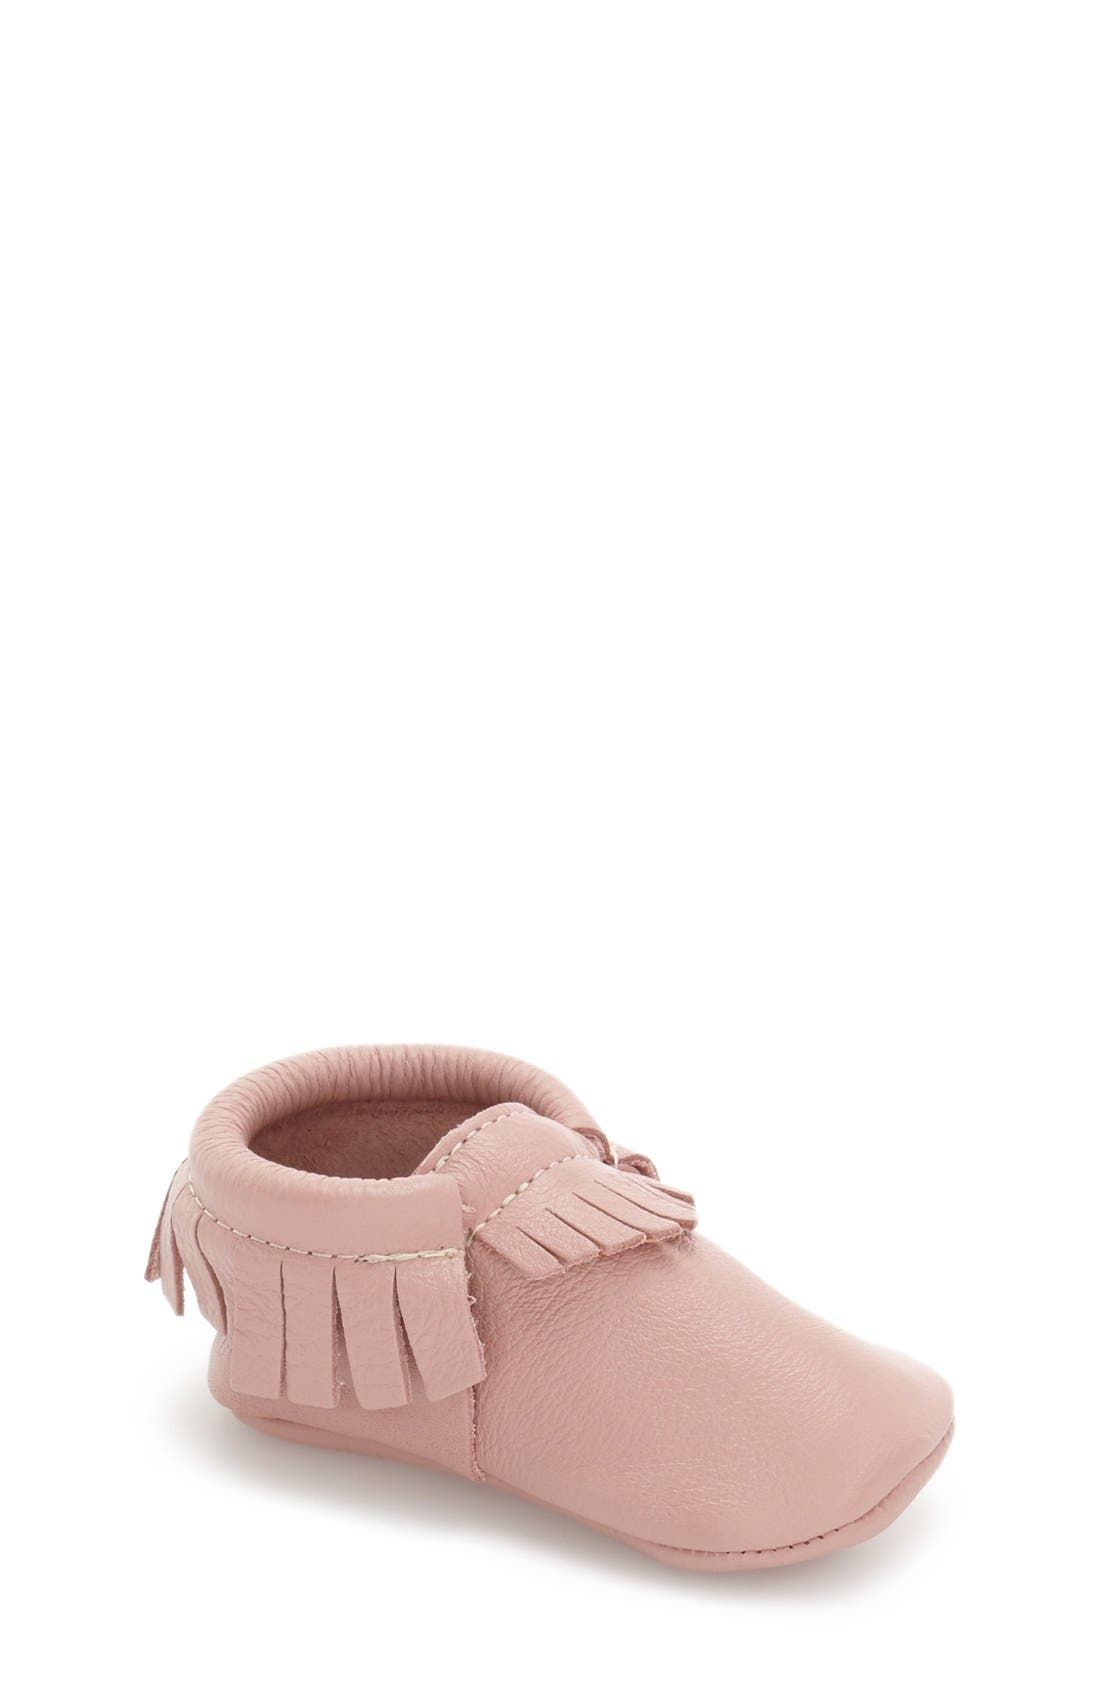 Alternate Image 1 Selected - Freshly Picked Classic Moccasin (Baby, Walker & Toddler)